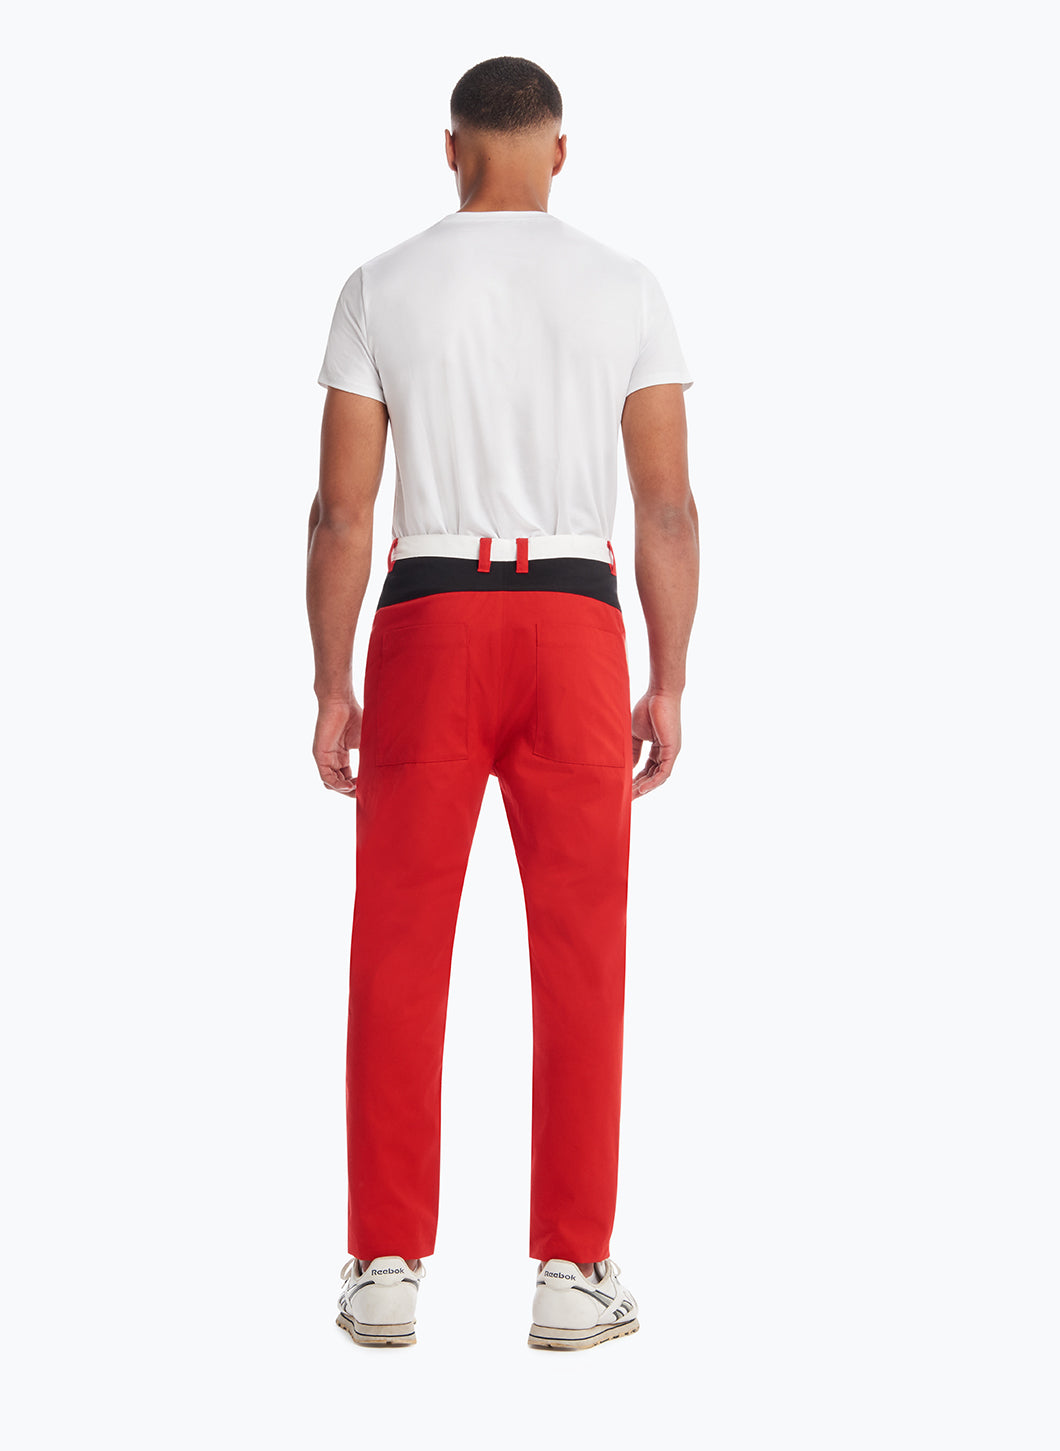 Pants with Asymmetrical Cuts in Red, Black & White Teflon